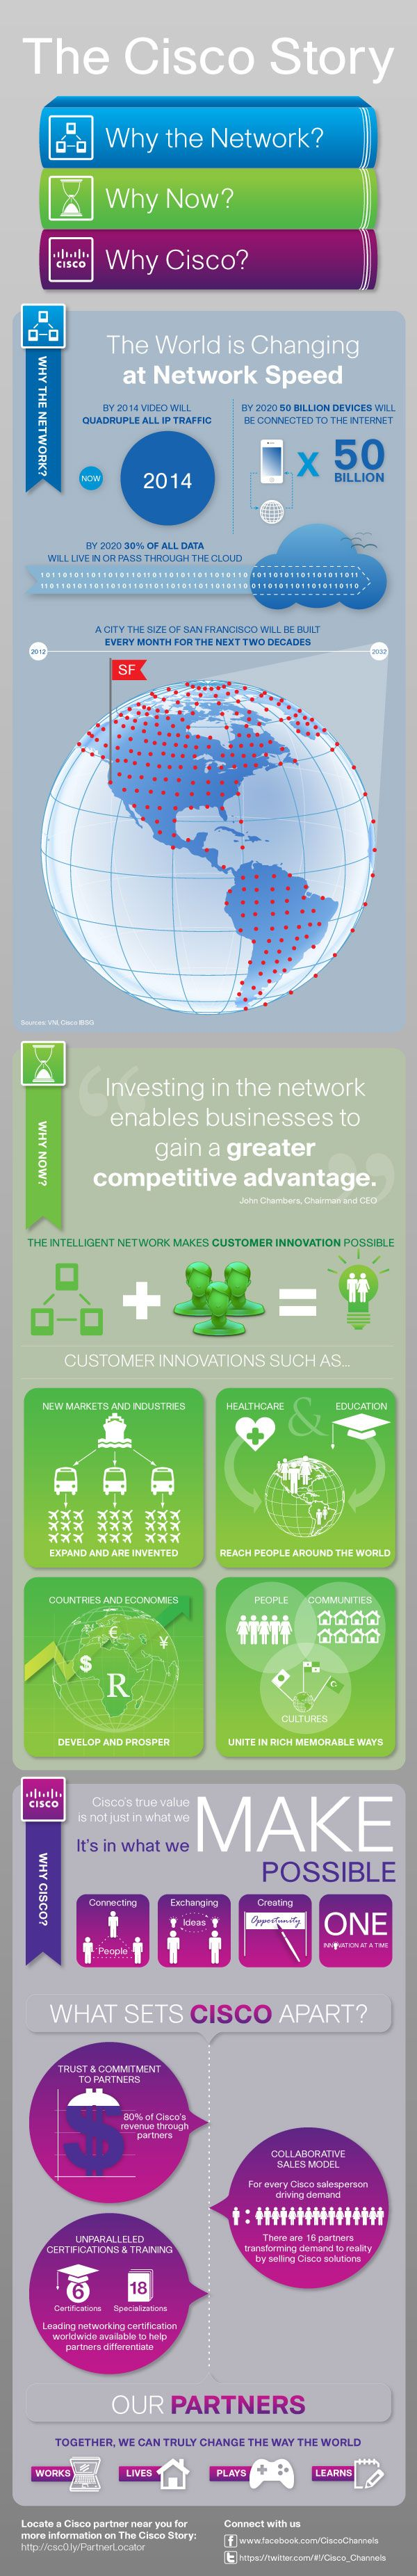 Why the network? Why now? And most importantly, why customers should work with Cisco partners? The answers to these questions can be found in our newest infographic. #myfirstinfographic